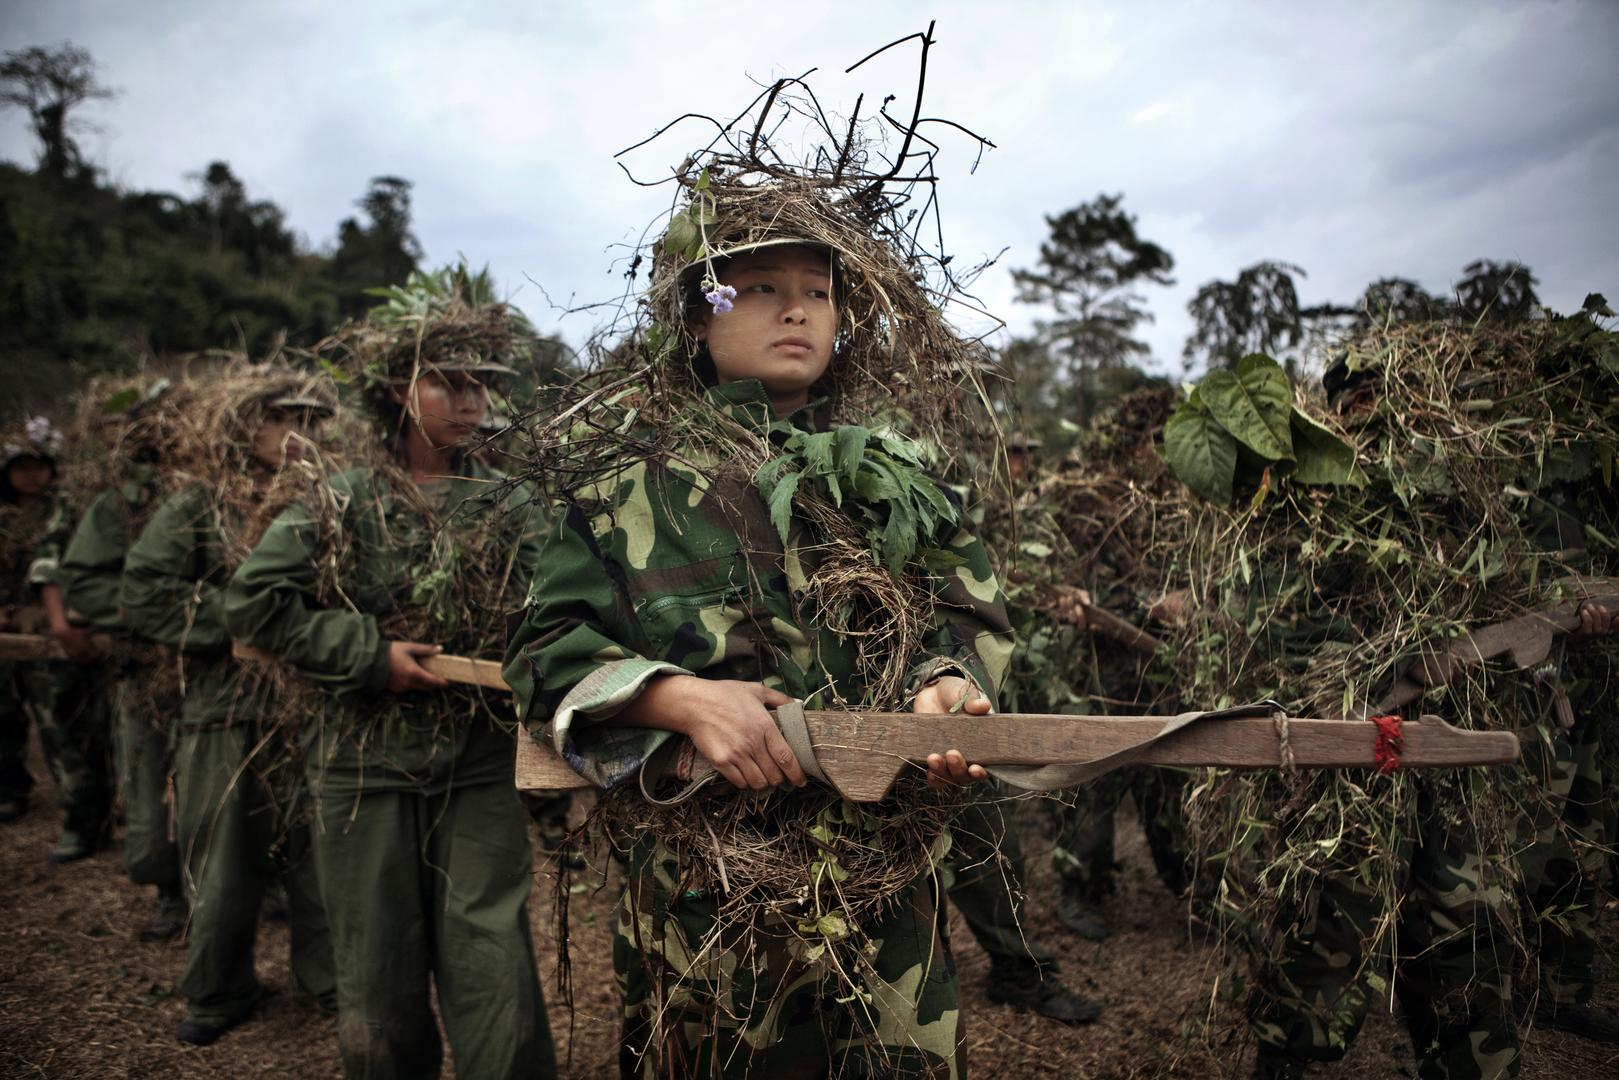 Kachin Independence Army (KIA) and militia trainees wearing camouflage and carrying wooden guns during a three-month basic training course near Laiza in KIA-controlled territory of Kachin State, January 2012.